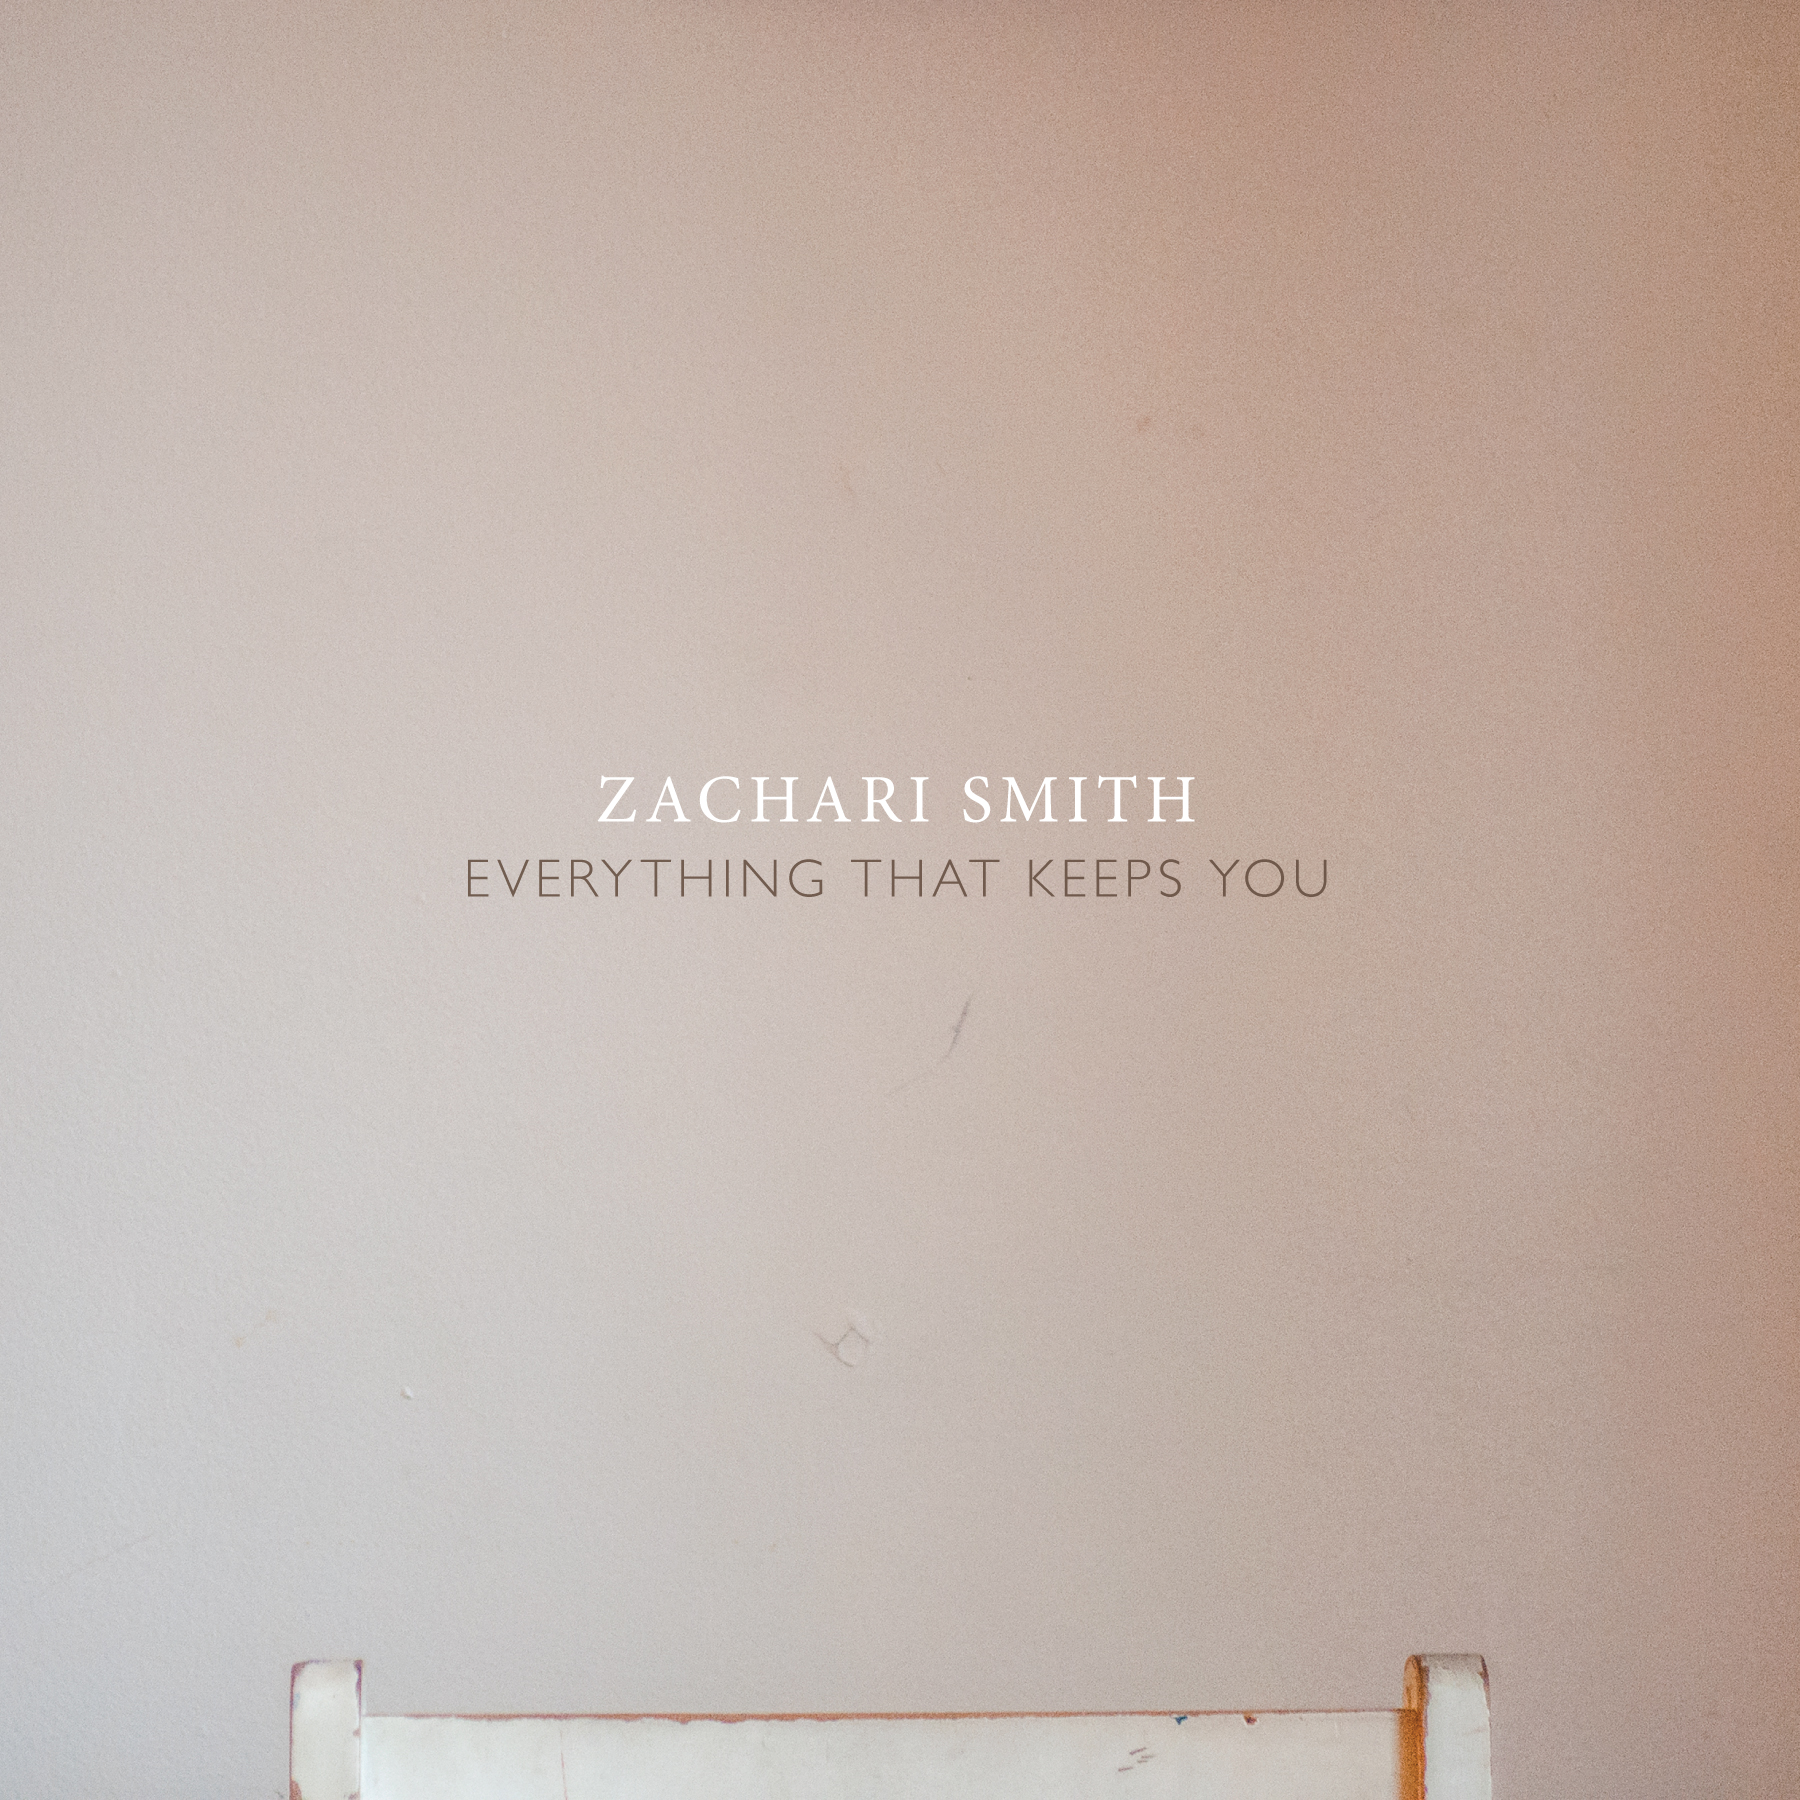 Zachari Smith - Everything That Keeps You (2019)